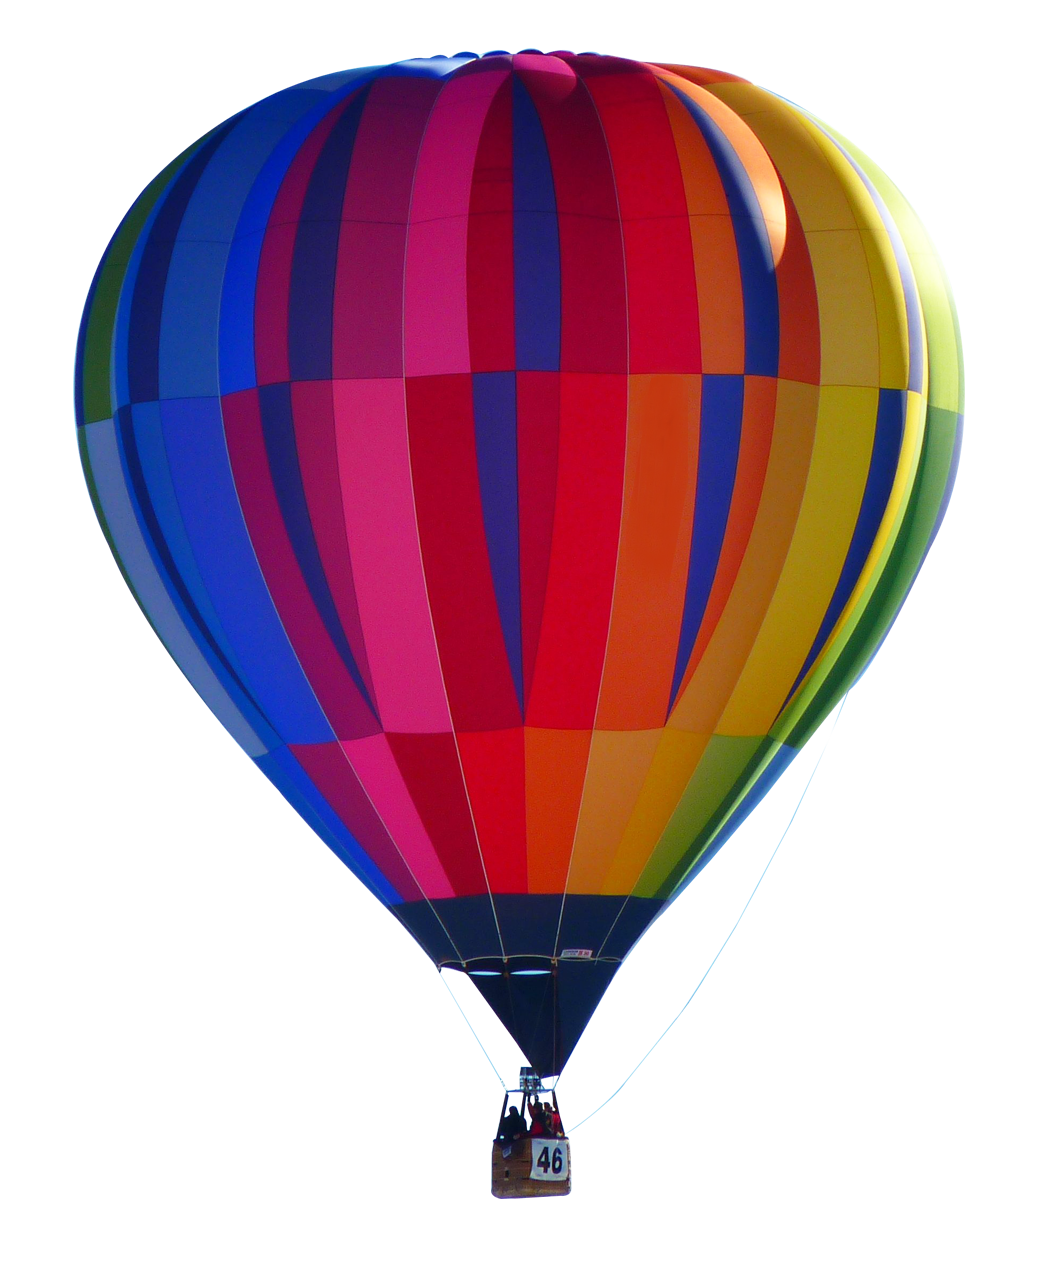 Gas Balloon PNG-PlusPNG.com-1050 - Gas Balloon PNG